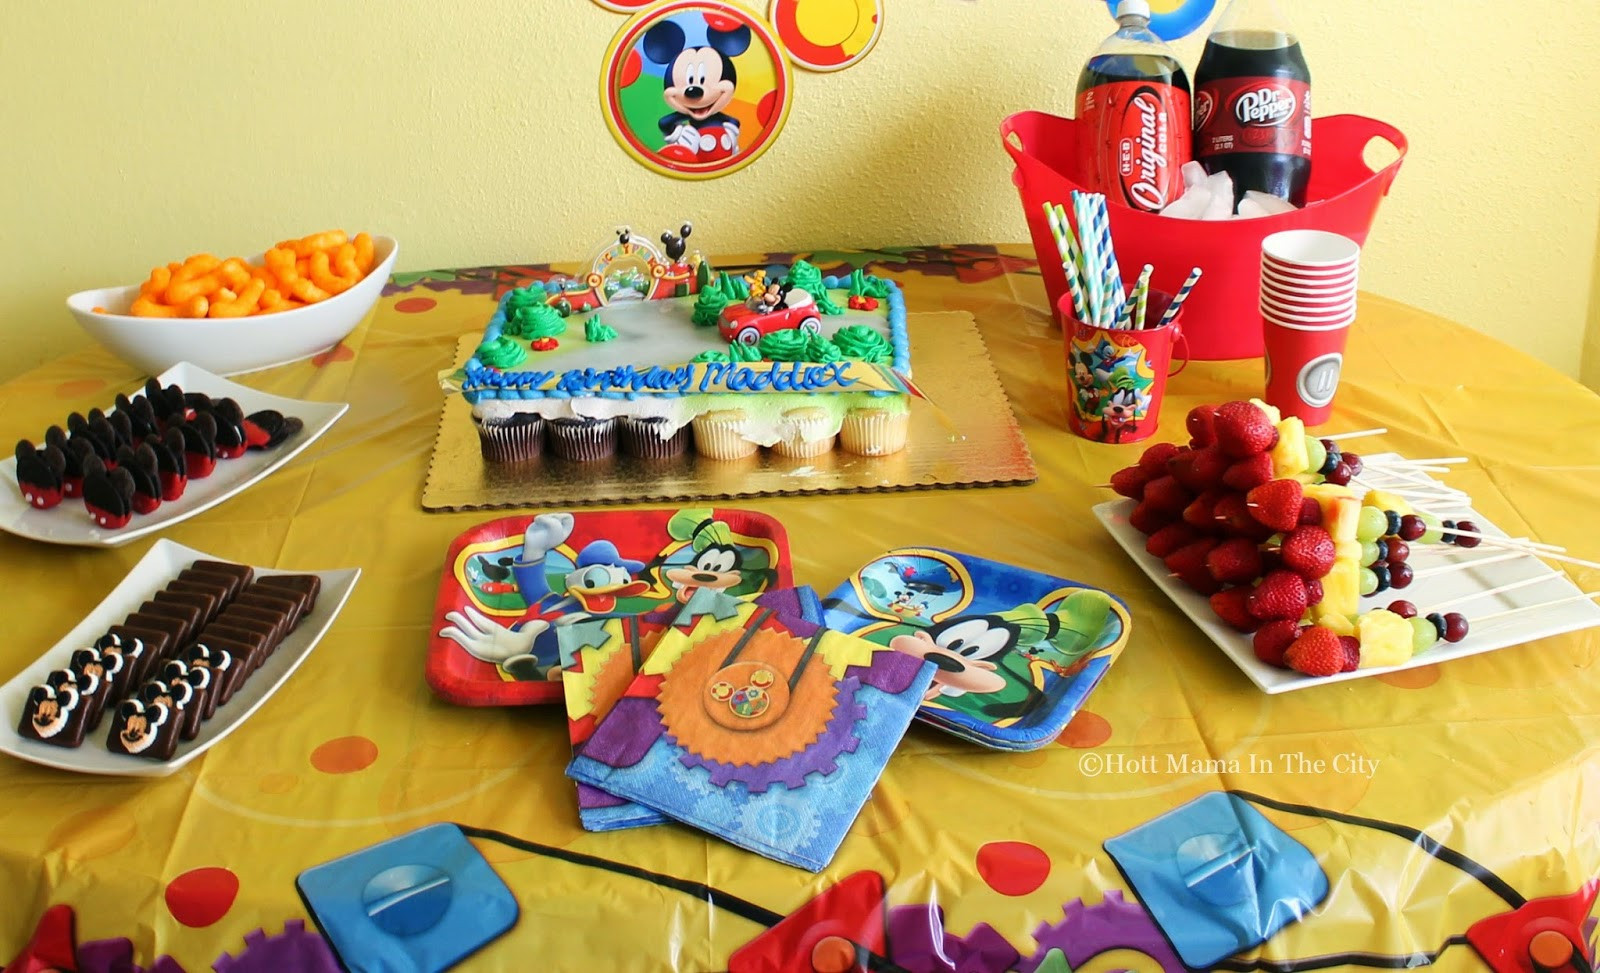 Mickey Mouse Dessert  Hot Mama In The City Mickey Mouse Themed Desserts